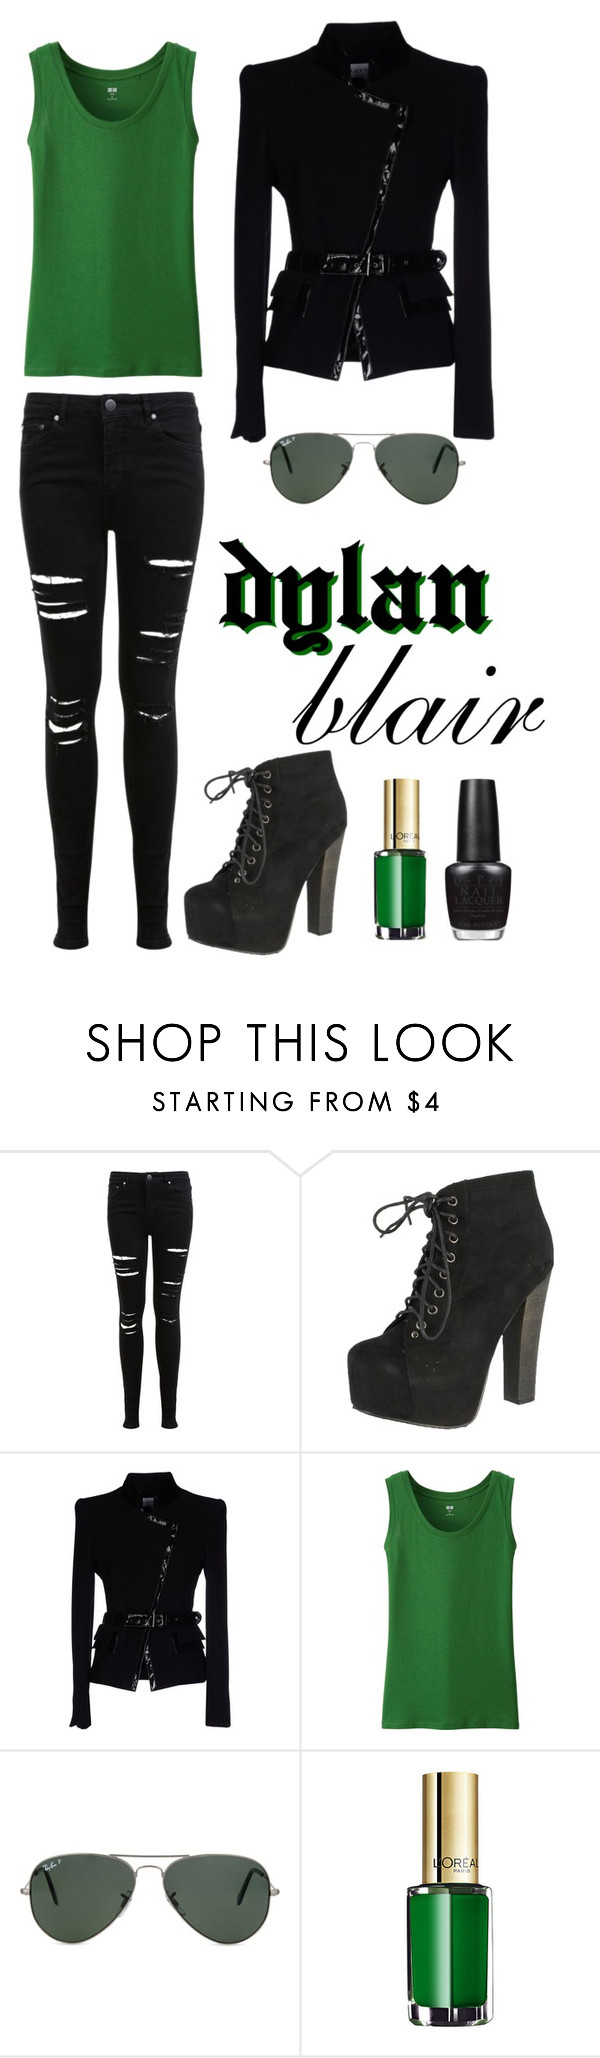 Dylan Blair by shannonparnell on Polyvore featuring Uniqlo, Gai Mattiolo, Miss Selfridge, Breckelle's, Ray-Ban, OPI, L'Oréal Paris and slytherin